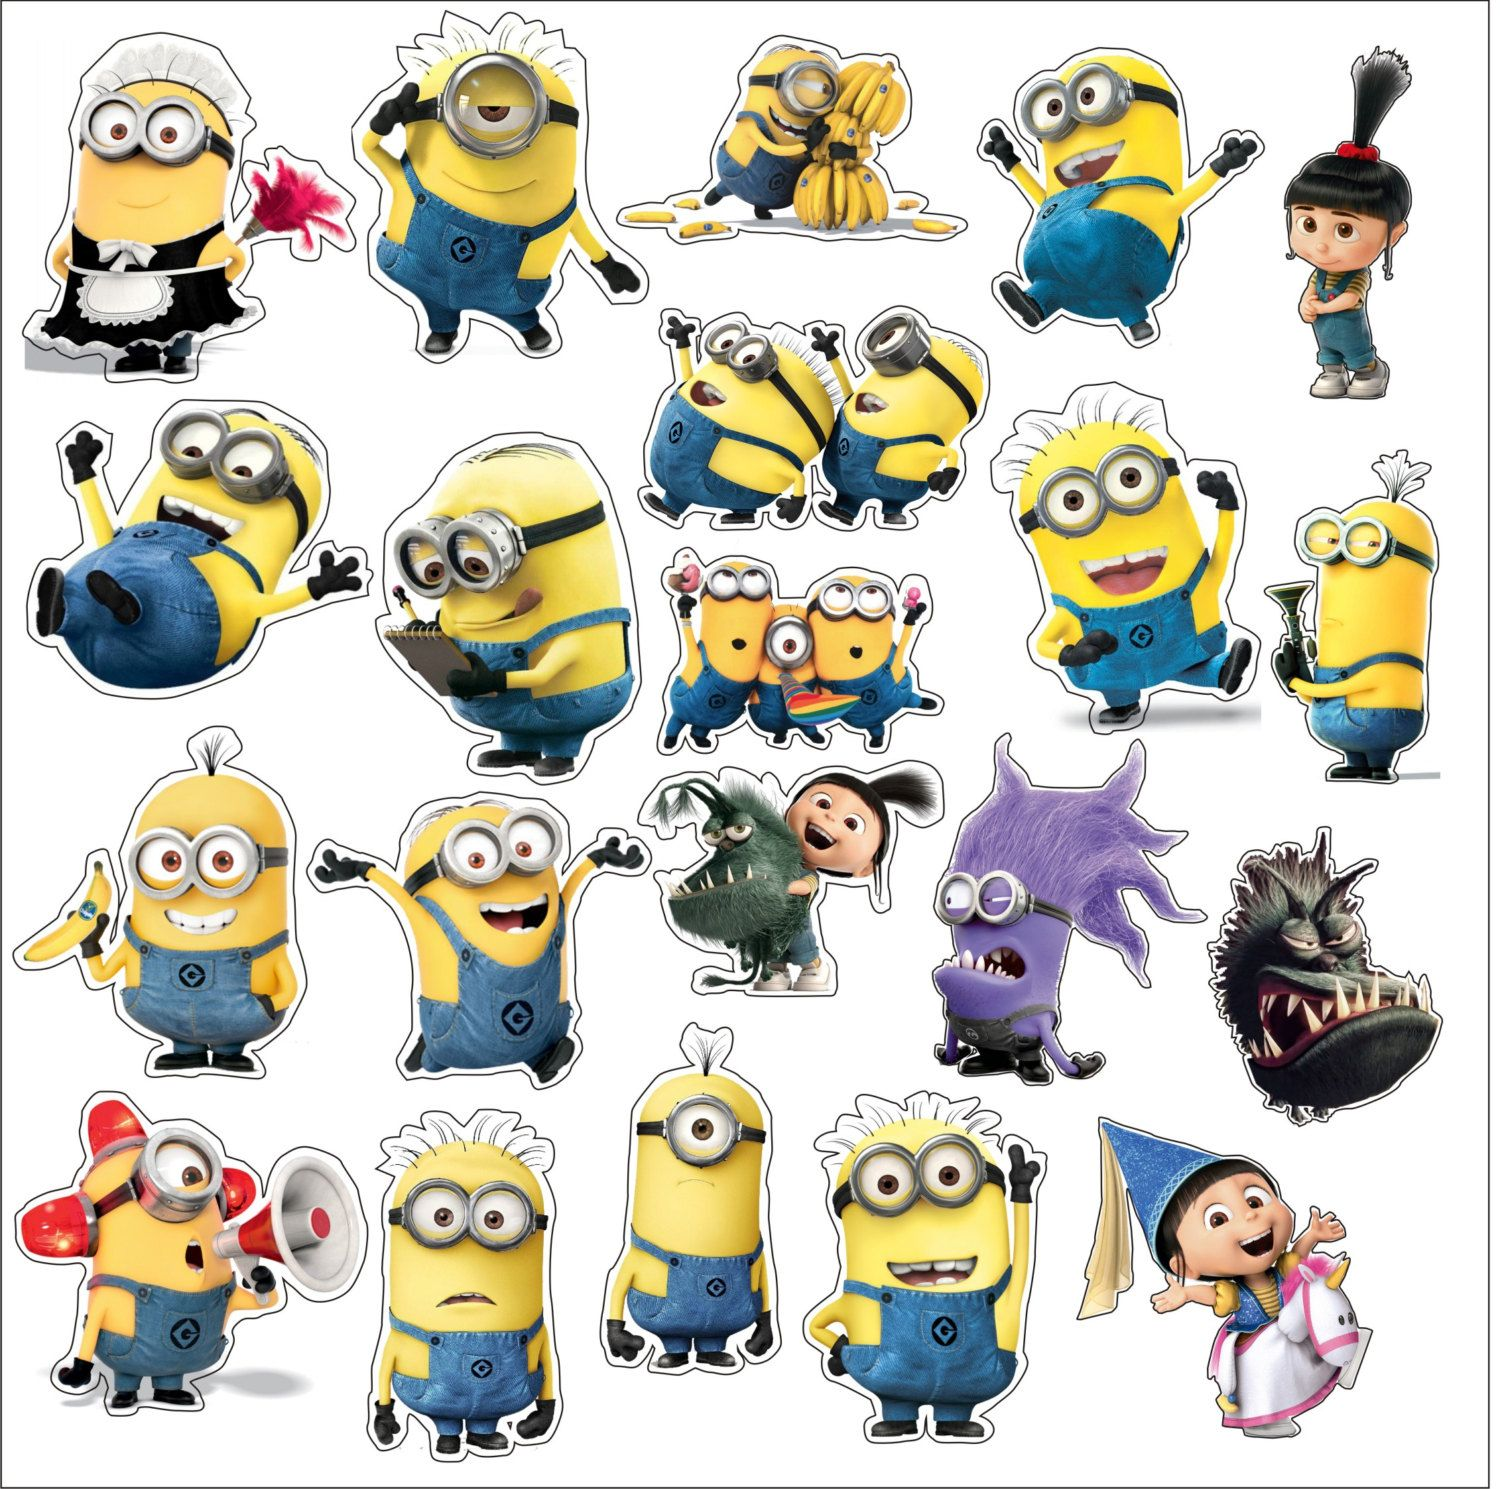 Set of Despicable ME Minion 21 Stickers Decal Colour Vinyl Car LapTop Baby Toy Children Party Home Boxes Glasses by SlavGraphics on Etsy